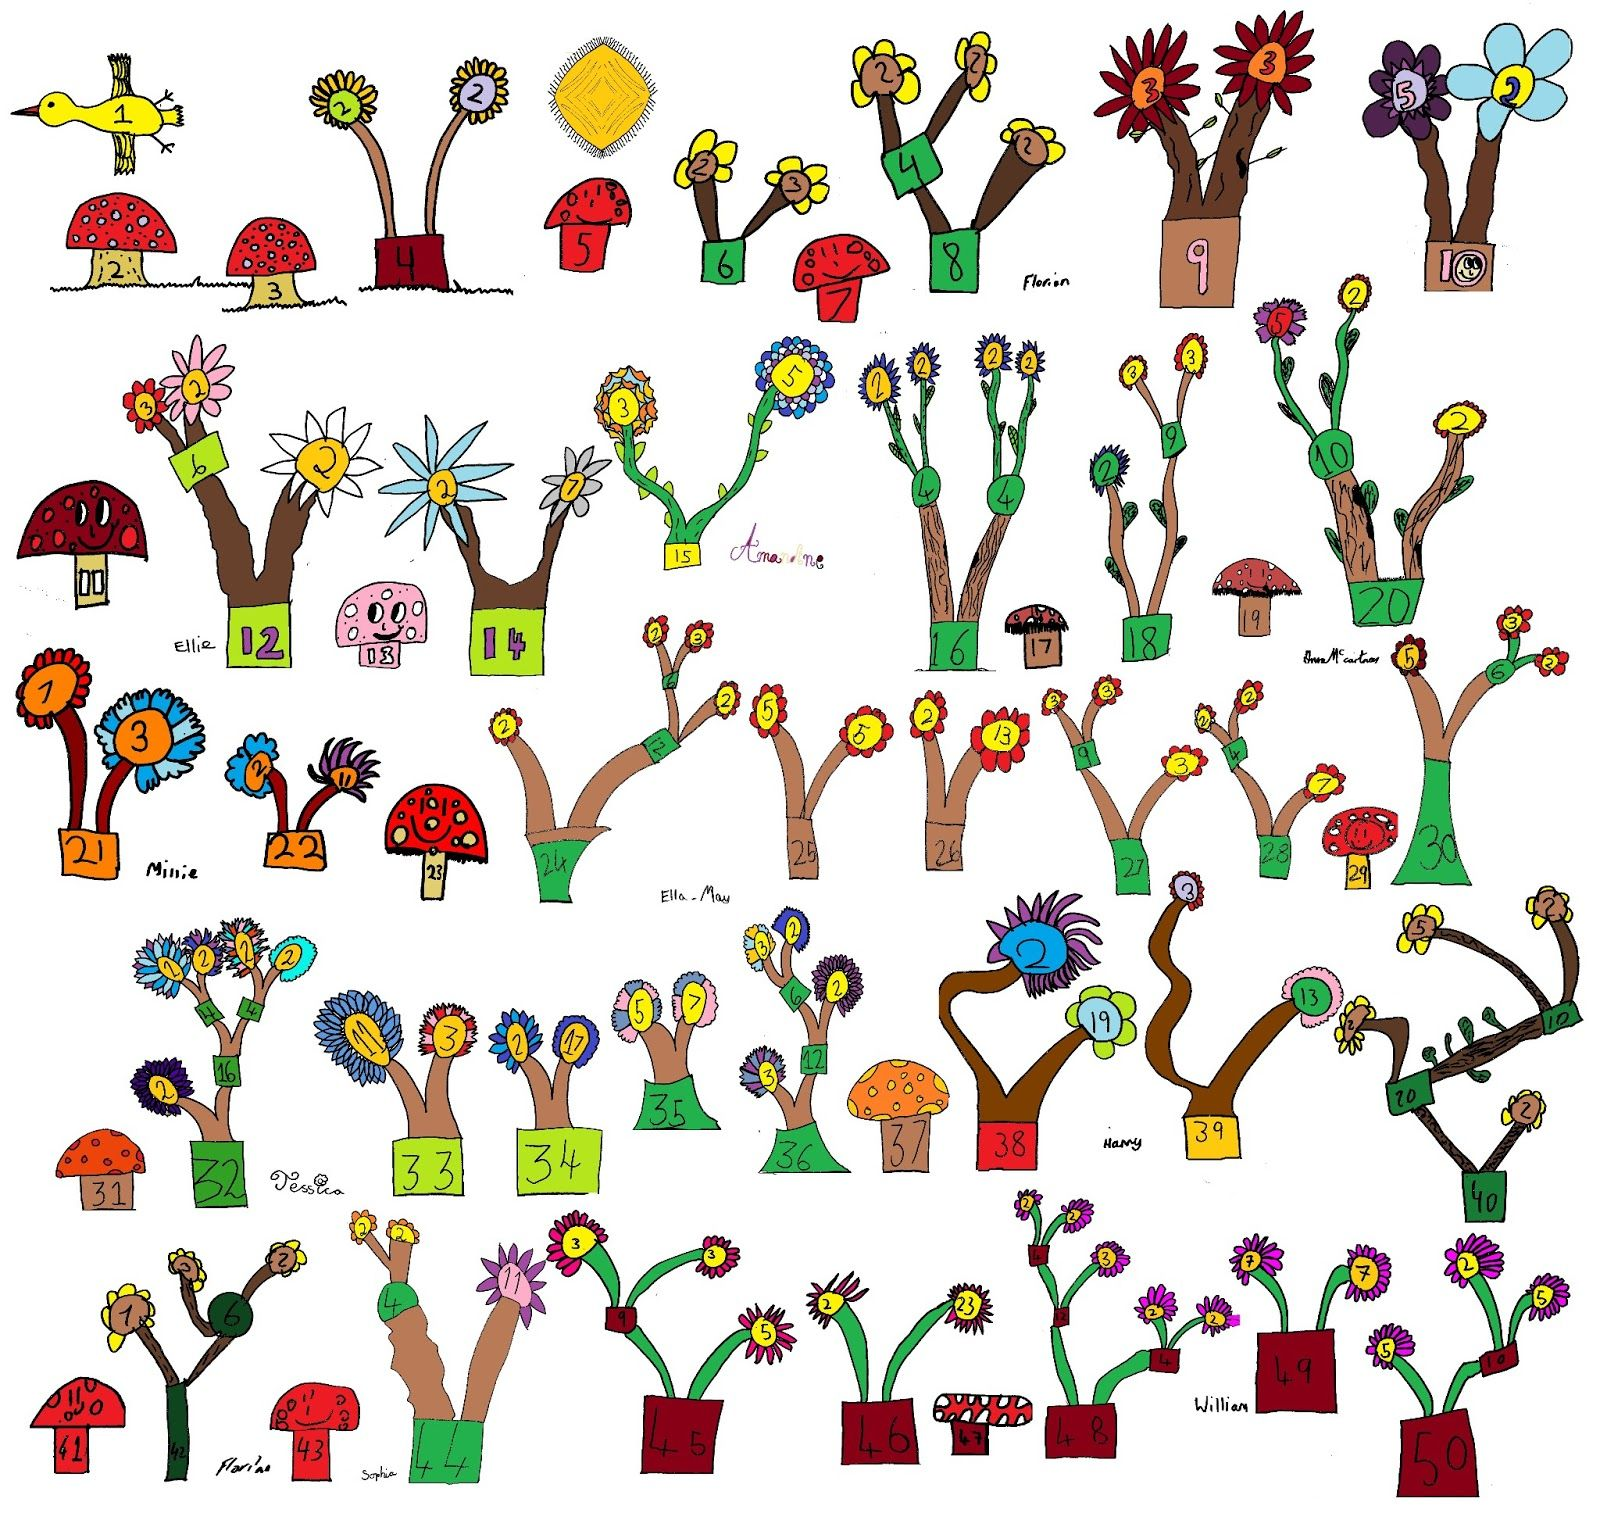 worksheet Factor Tree pinkmathematics important factors waldorf grade 4 math a forest of factor trees with prime numbers flowering